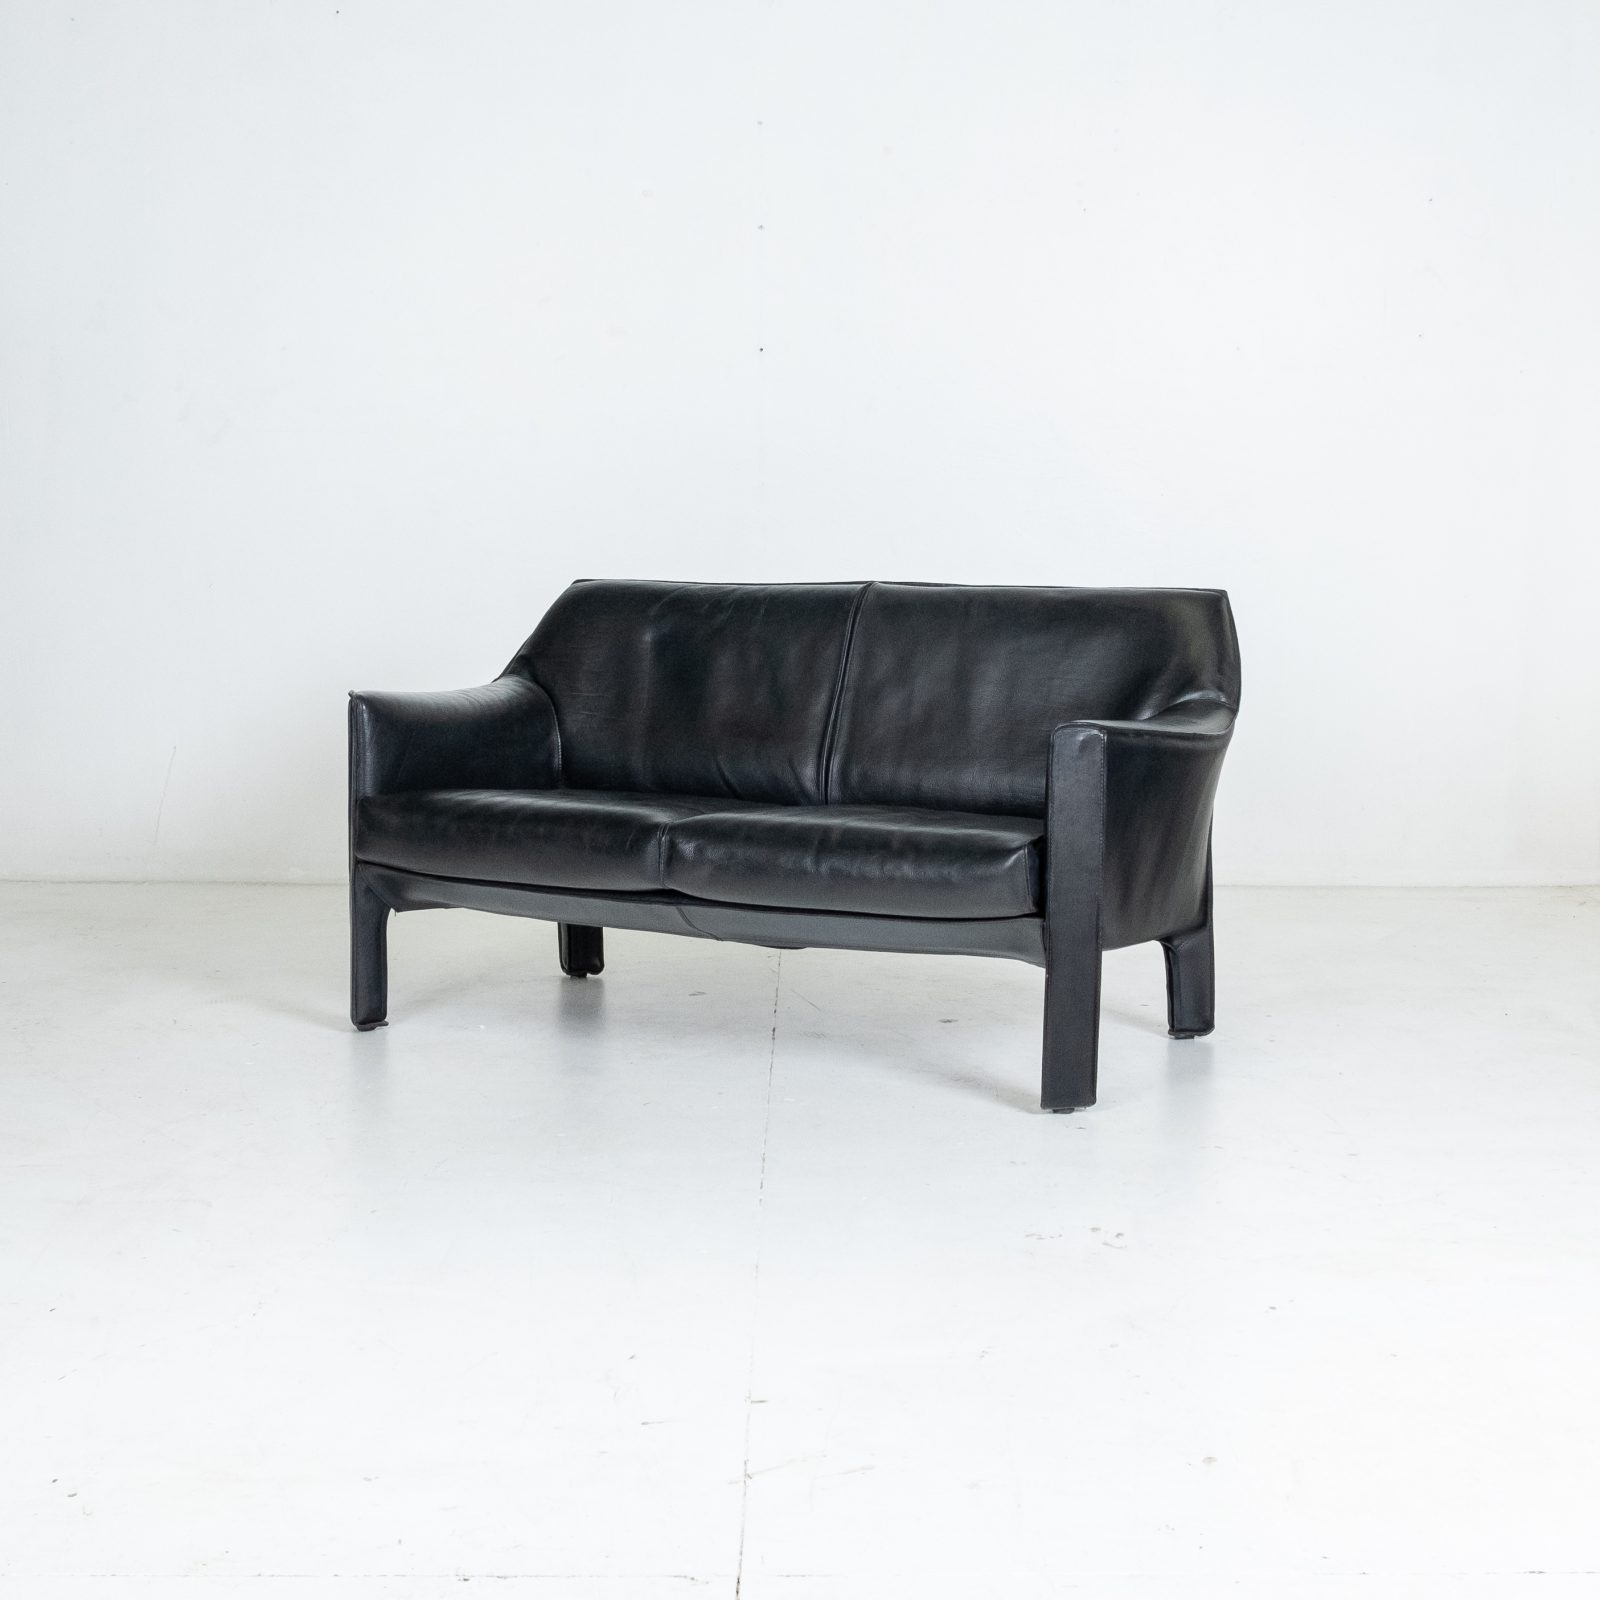 Model 415 Cab 2 Seat Sofa By Mario Bellini For Cassina In Black Leather, 1987, Italy Hero 2